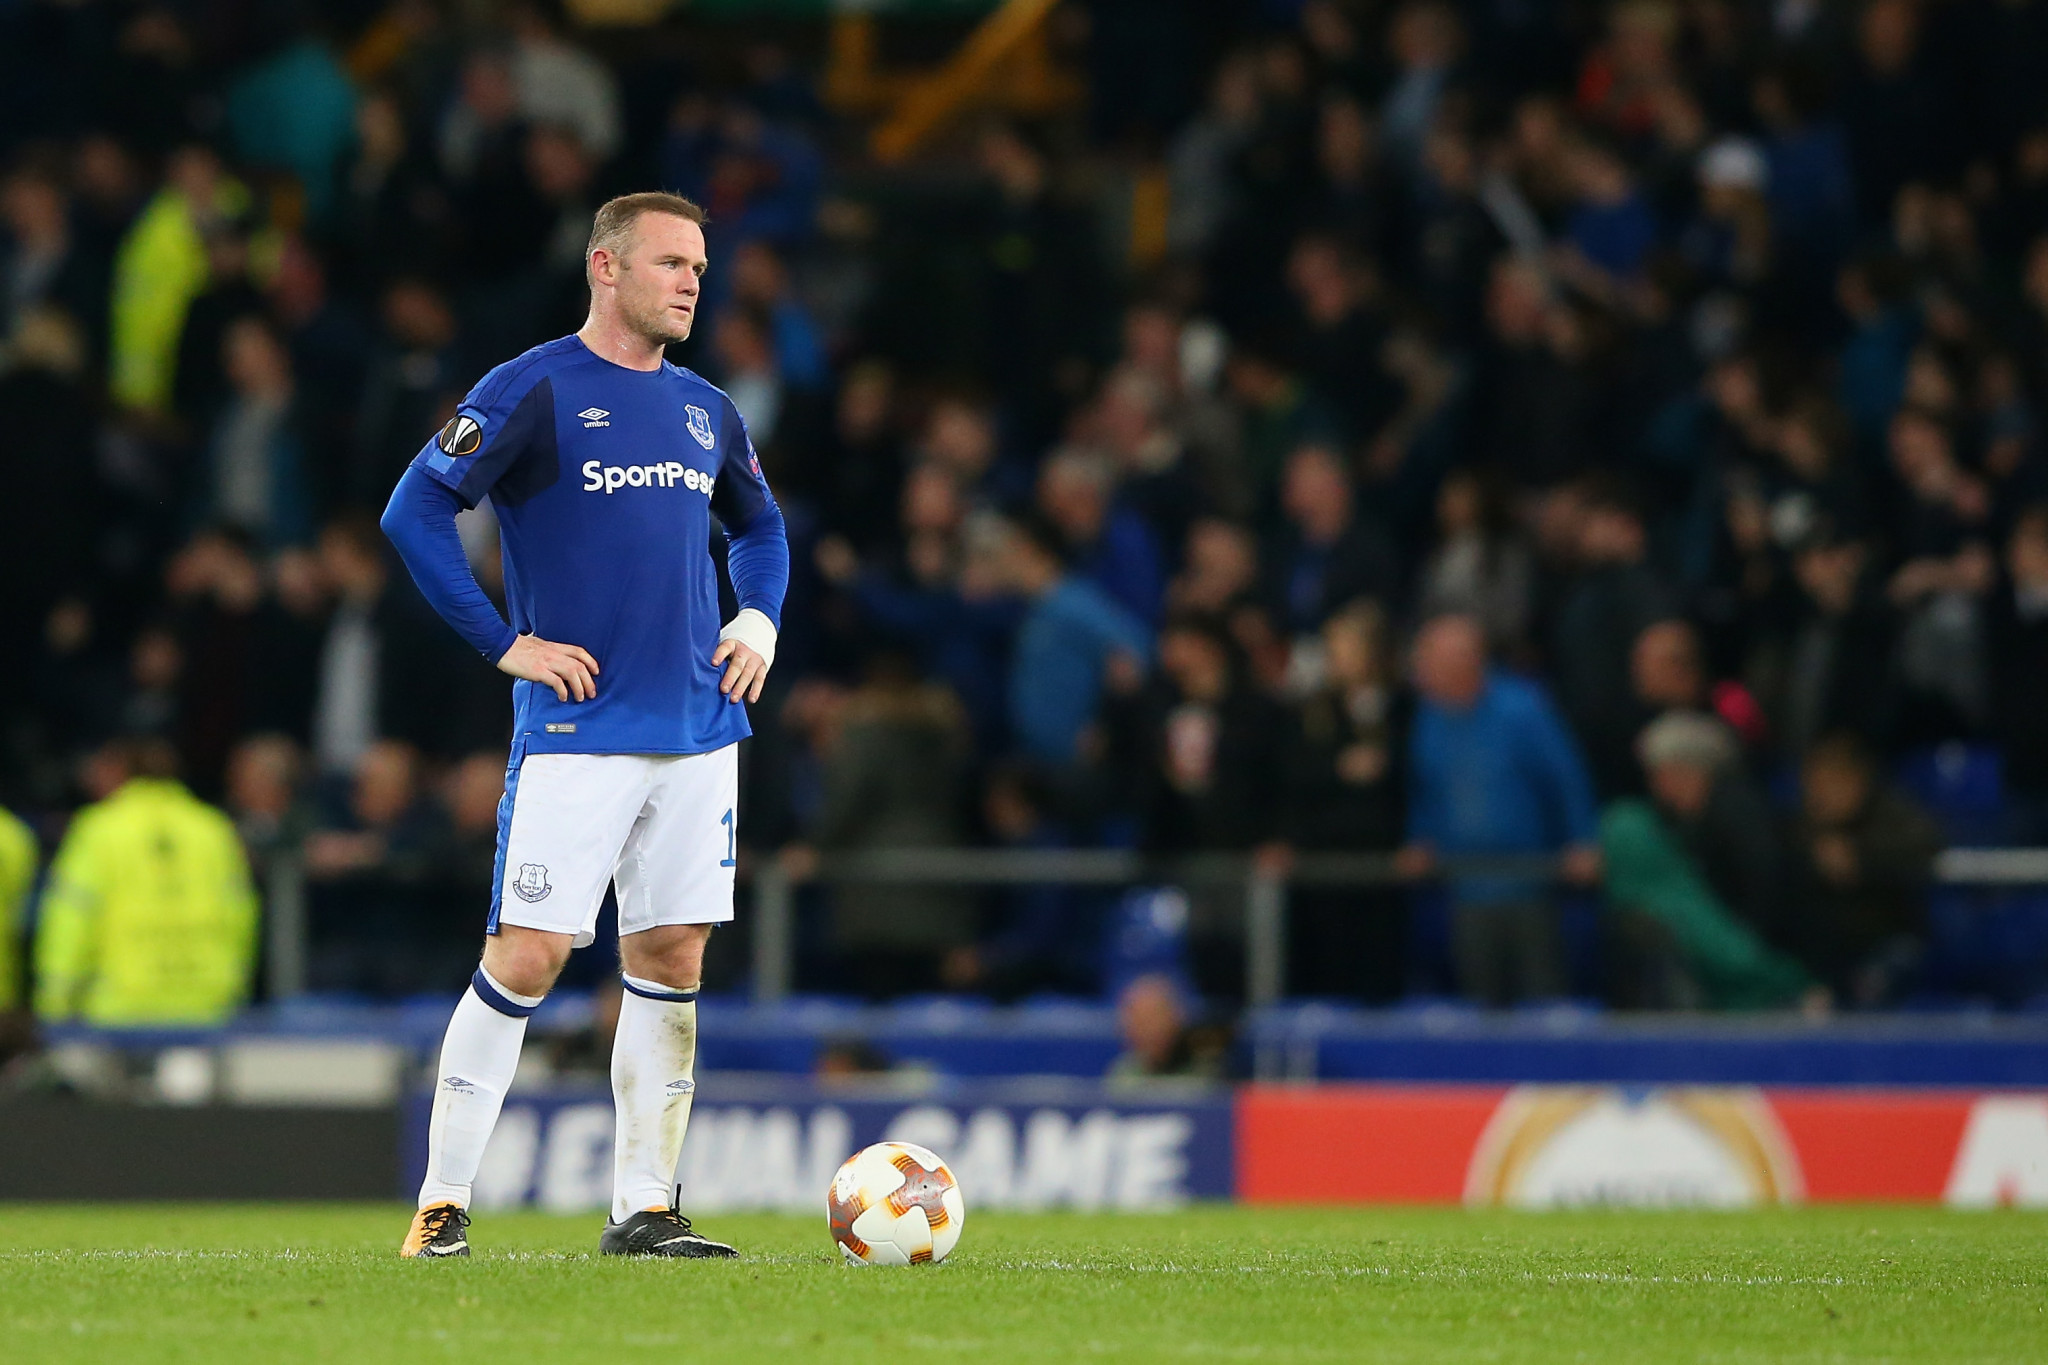 Wayne Rooney's lifestyle has been questioned throughout his career ©Getty Images